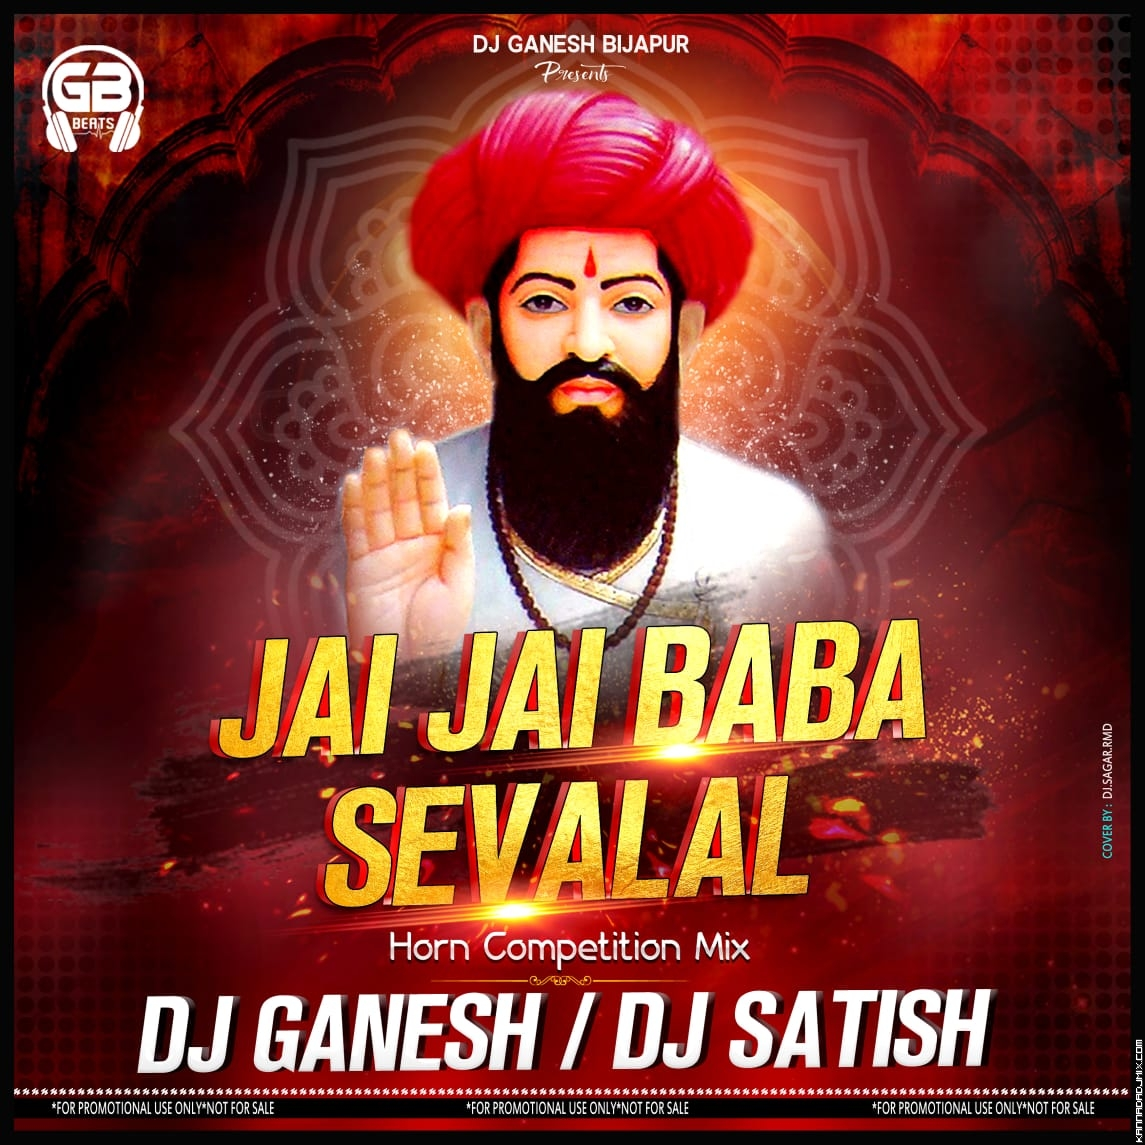 JAI JAI BAB SEVALAL HORN COMPETETION MIX DJ GANESH [BIJAPUR] AND DJ SATISH [BIJAPUR].mp3